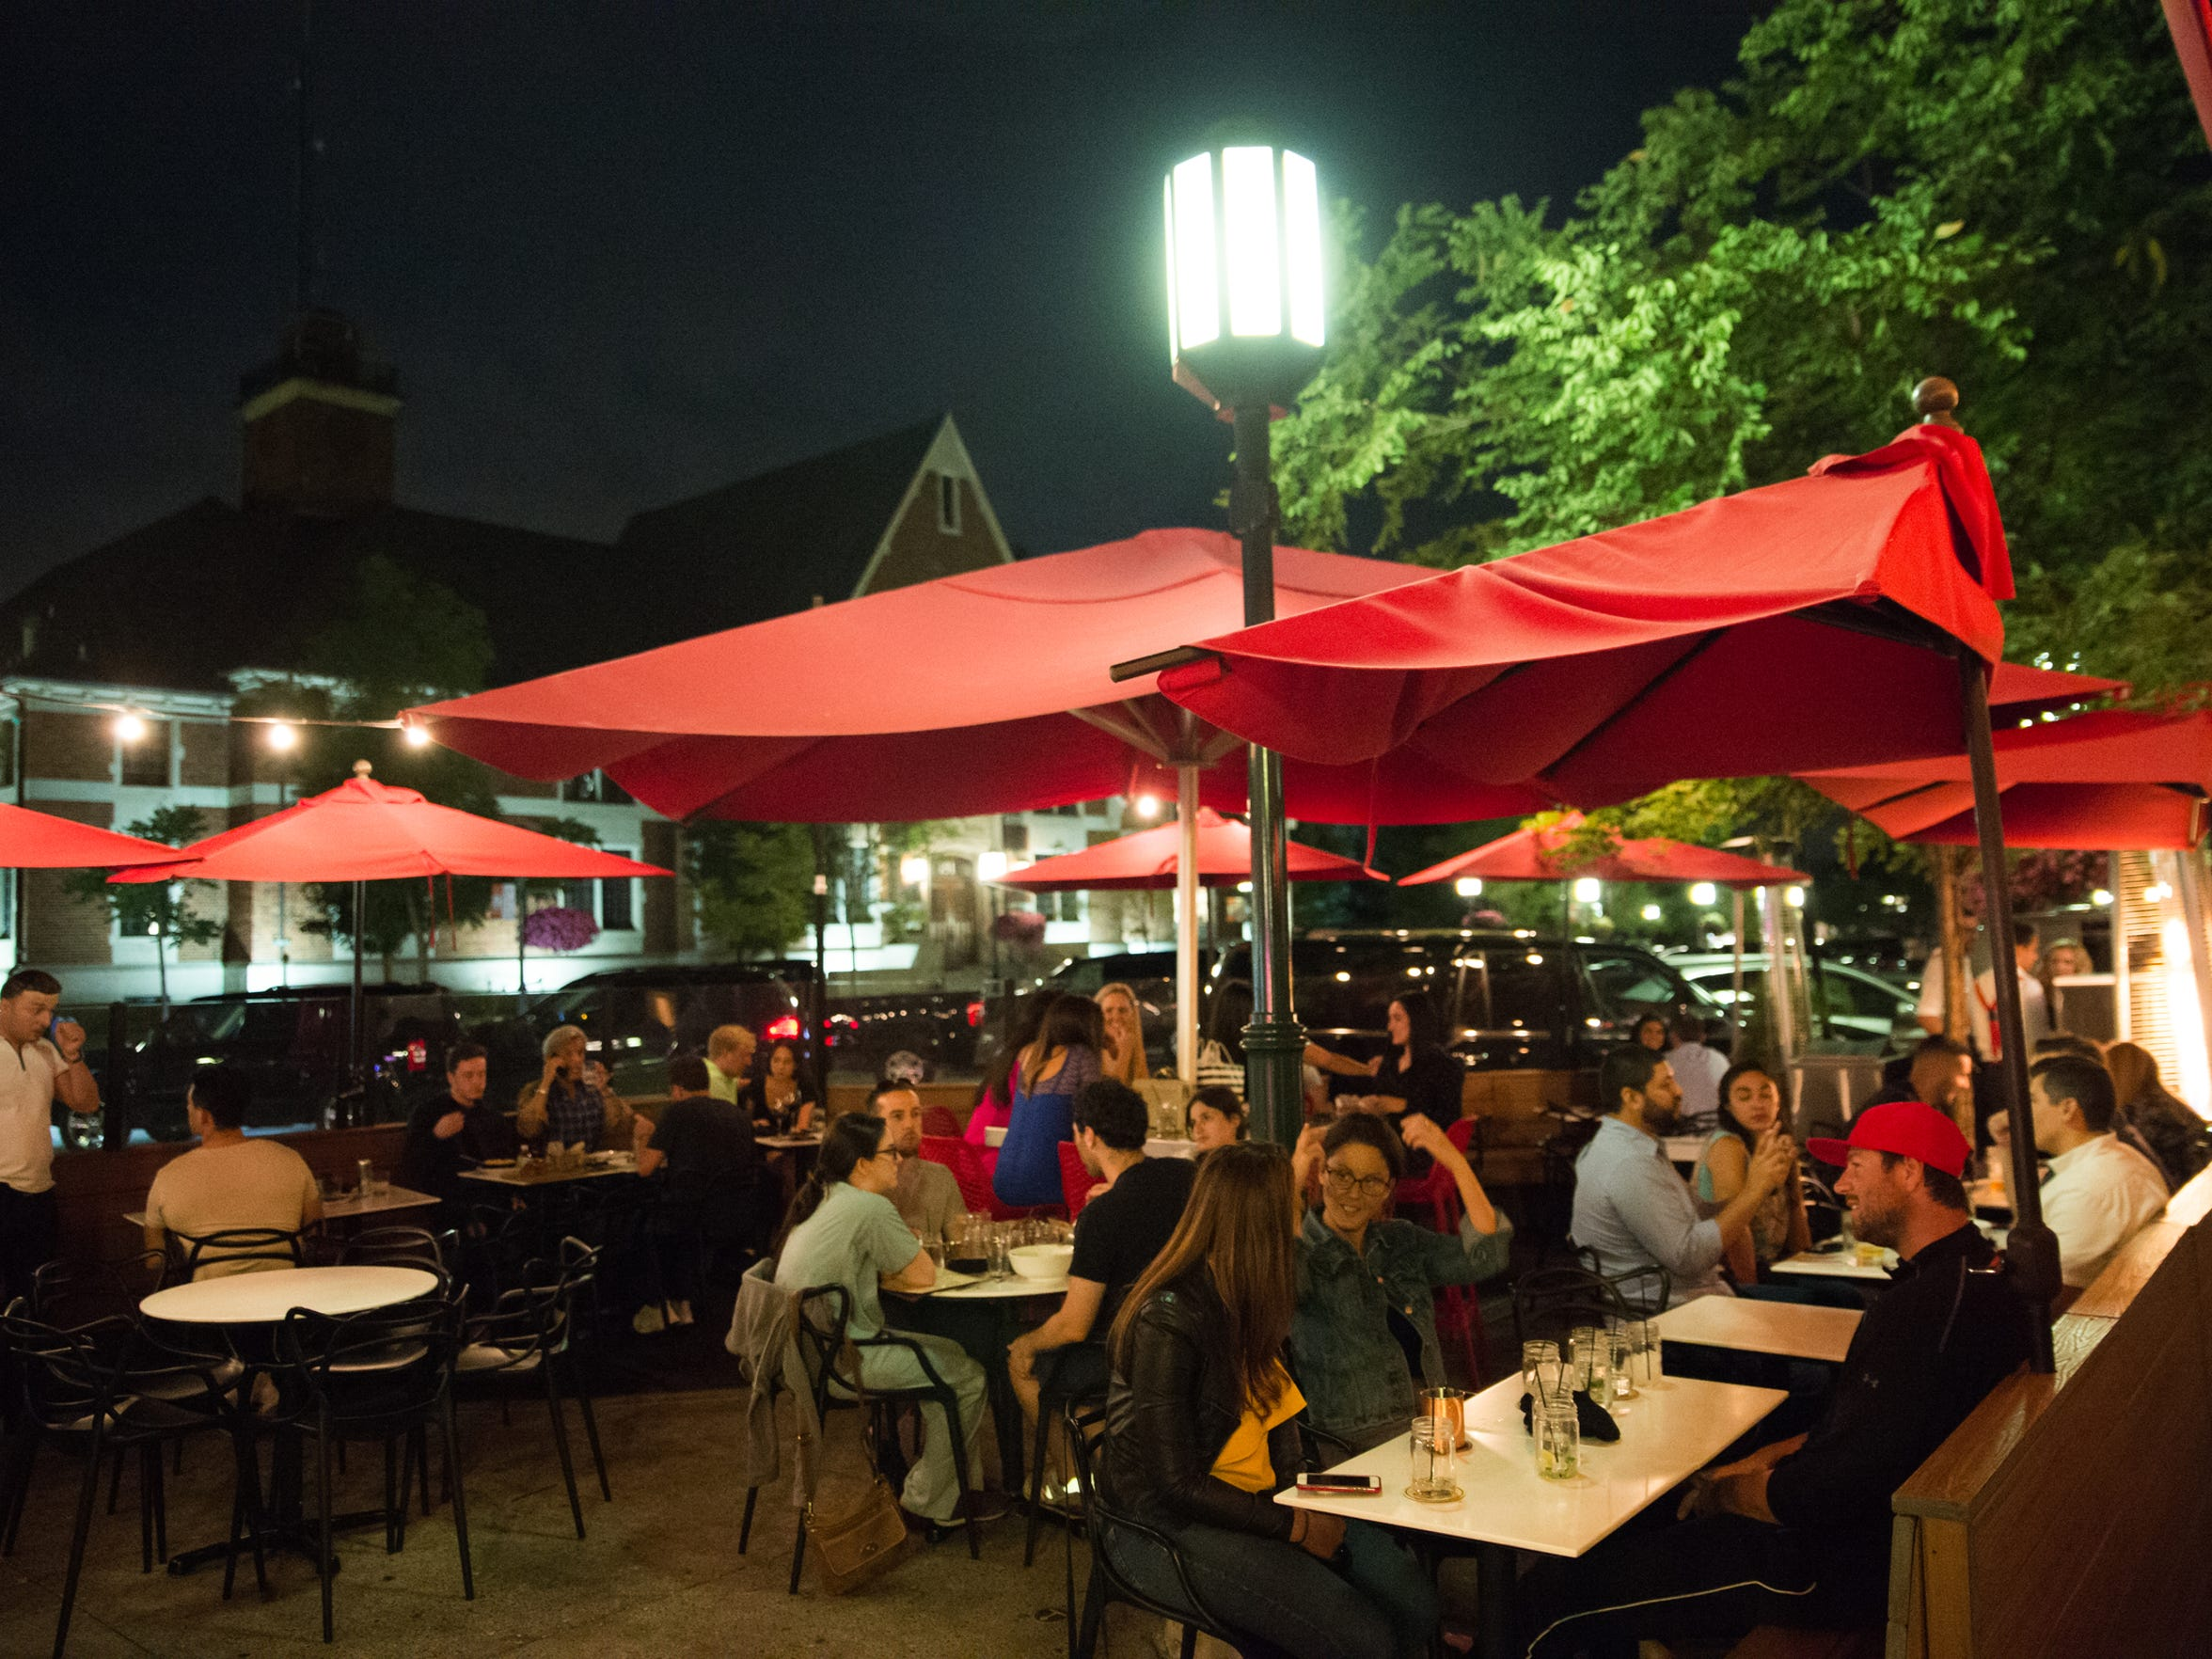 The Townhouse's patio in Birmingham, Mich. on Friday,